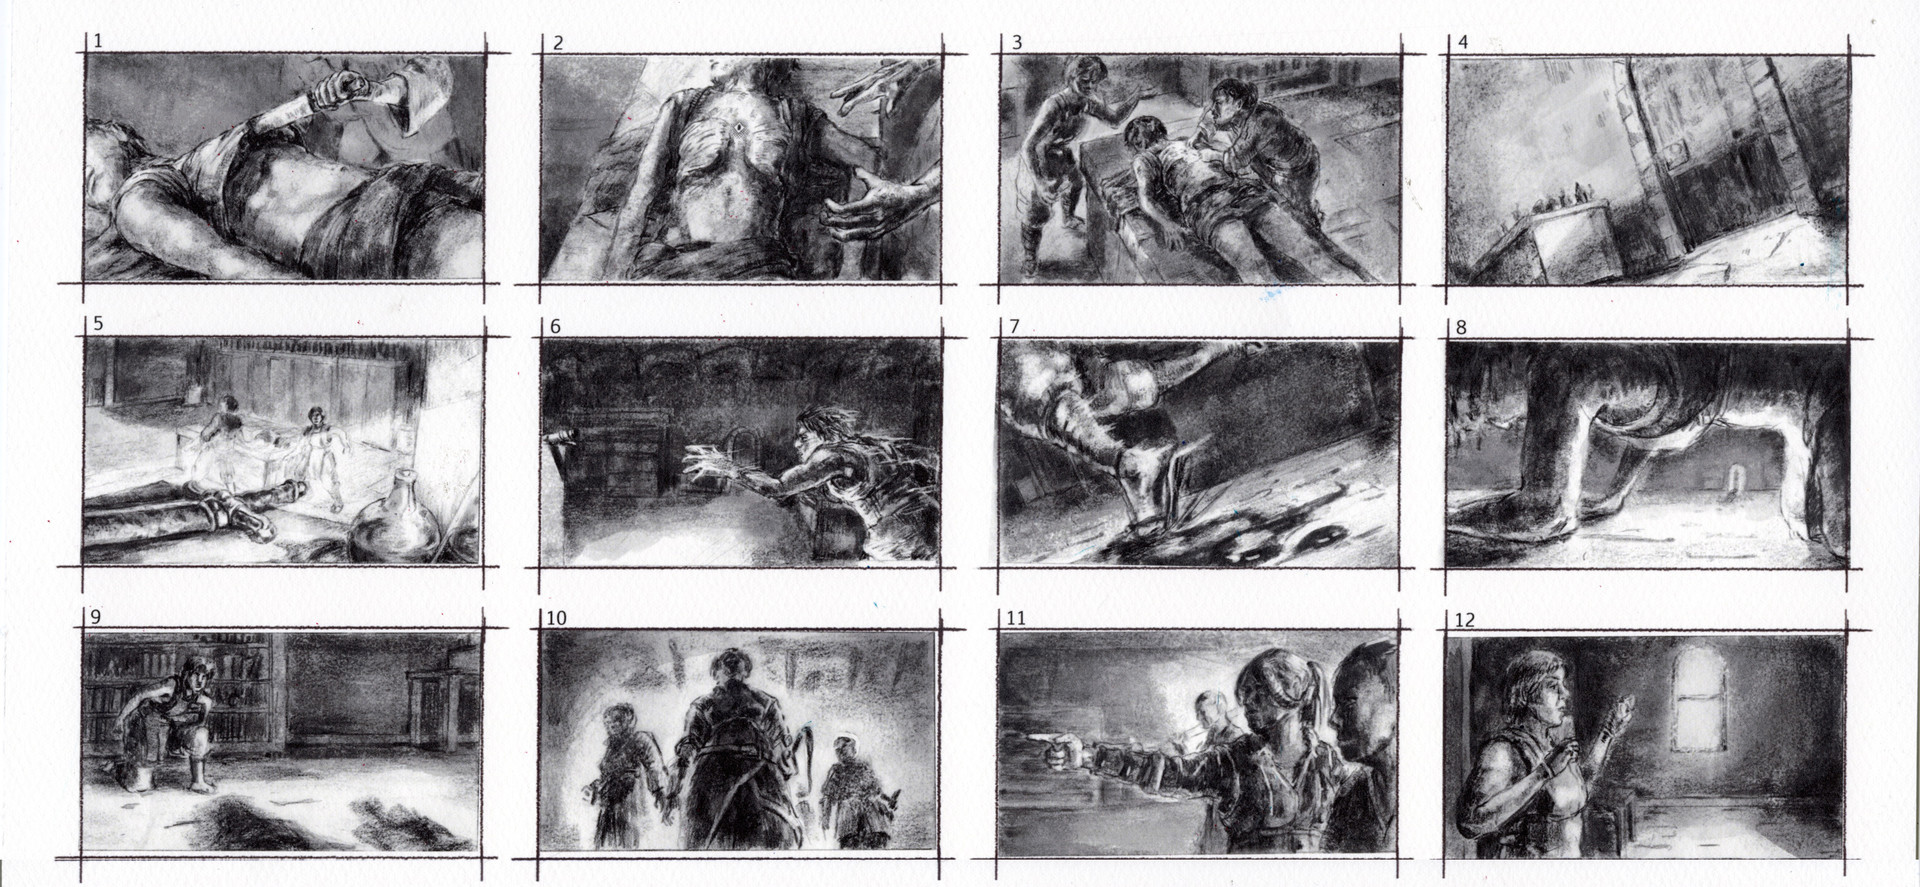 Tom mackintosh storyboard1